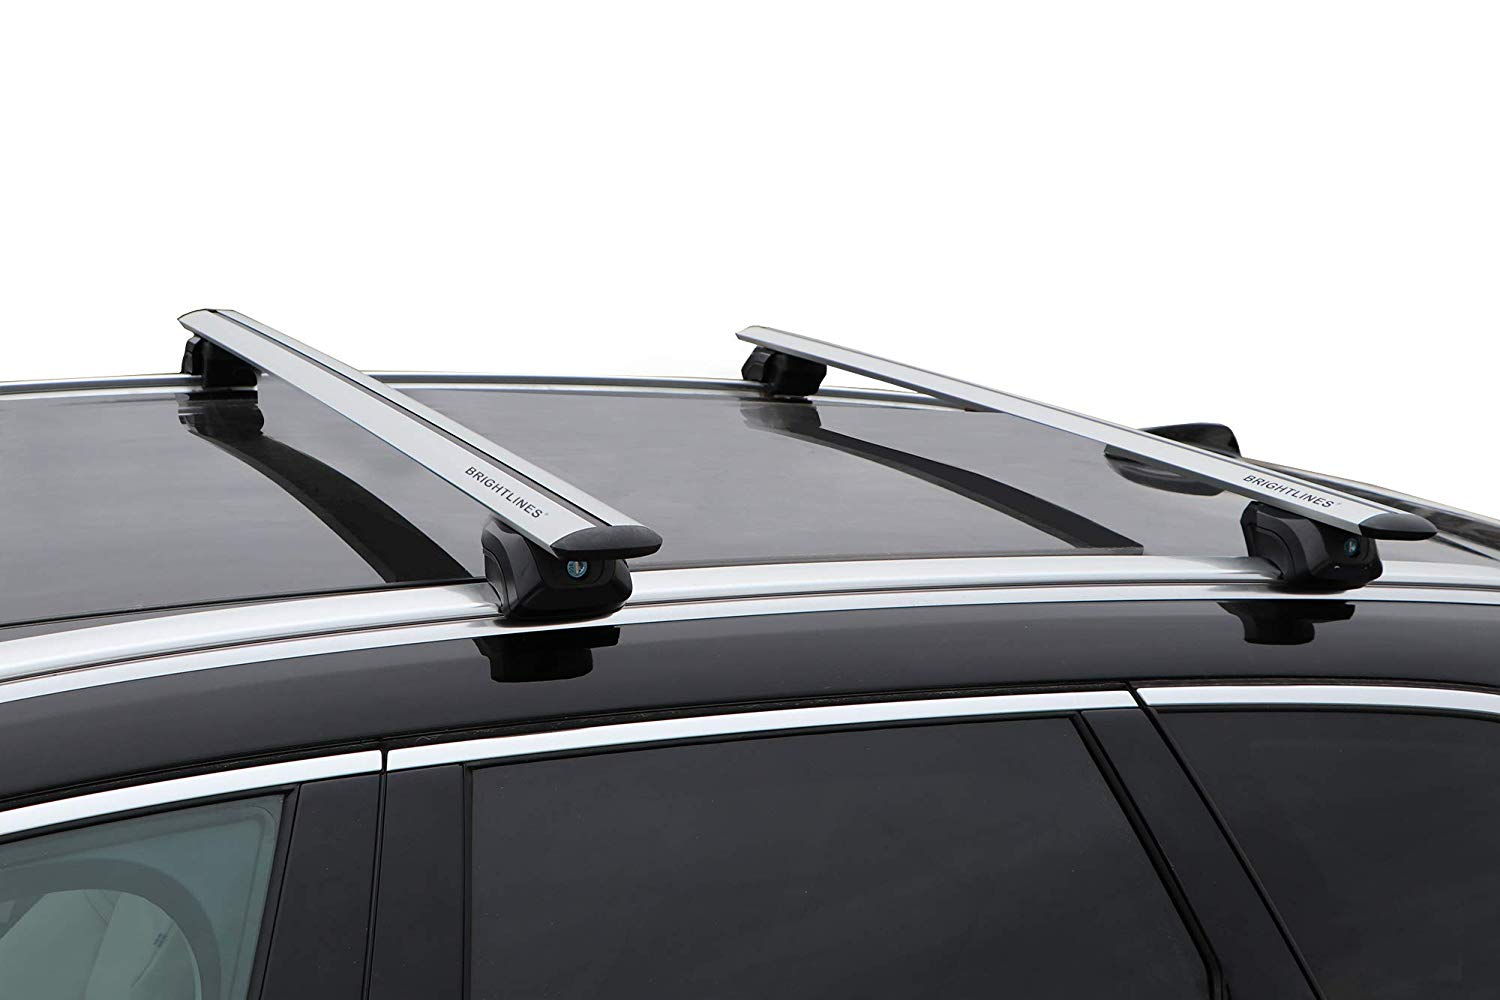 brightlines roof rack crossbars luggage bars replacement for 2009 2021 audi q5